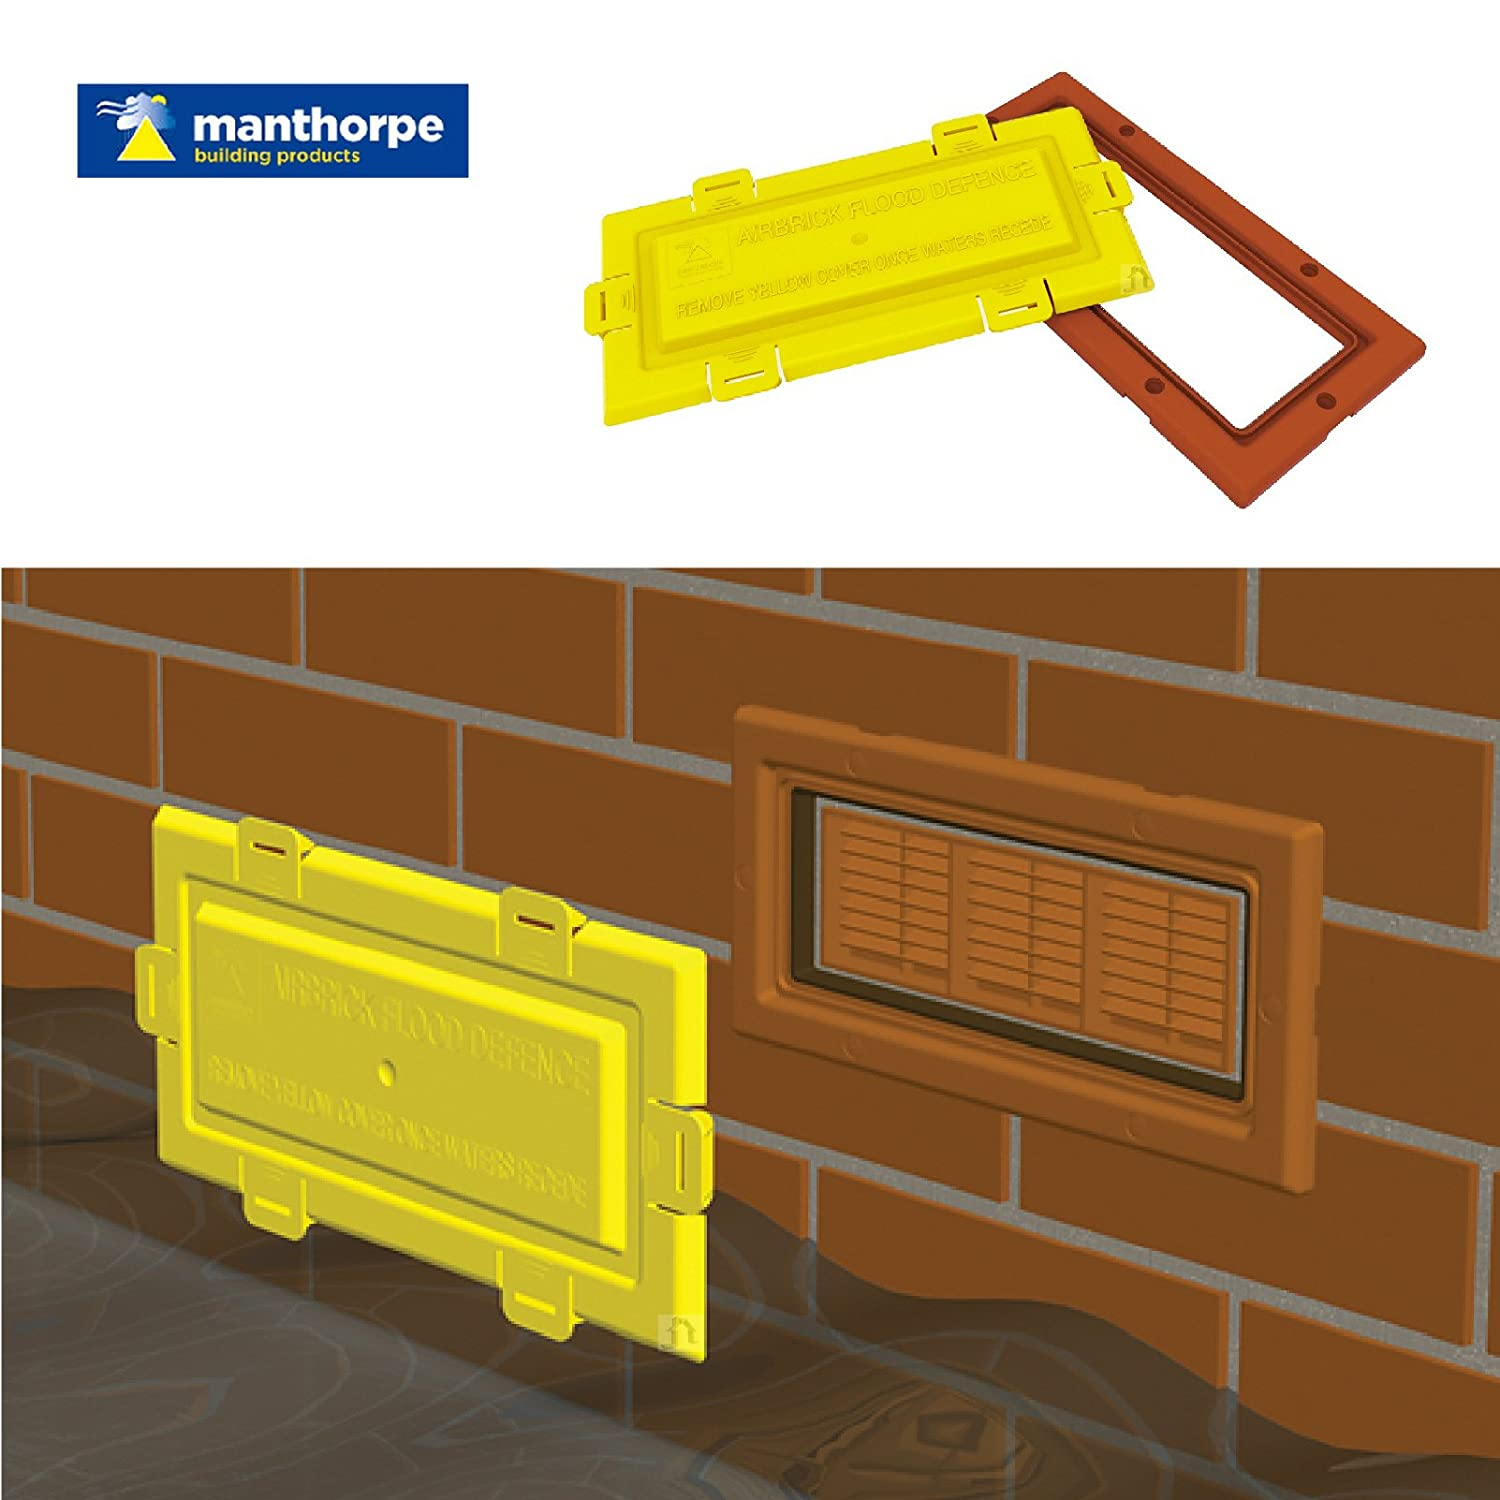 Airbrick flood water defence Protection cover and Terracotta frame / Air Brick Manthorpe RL-B5U1-0FPQ